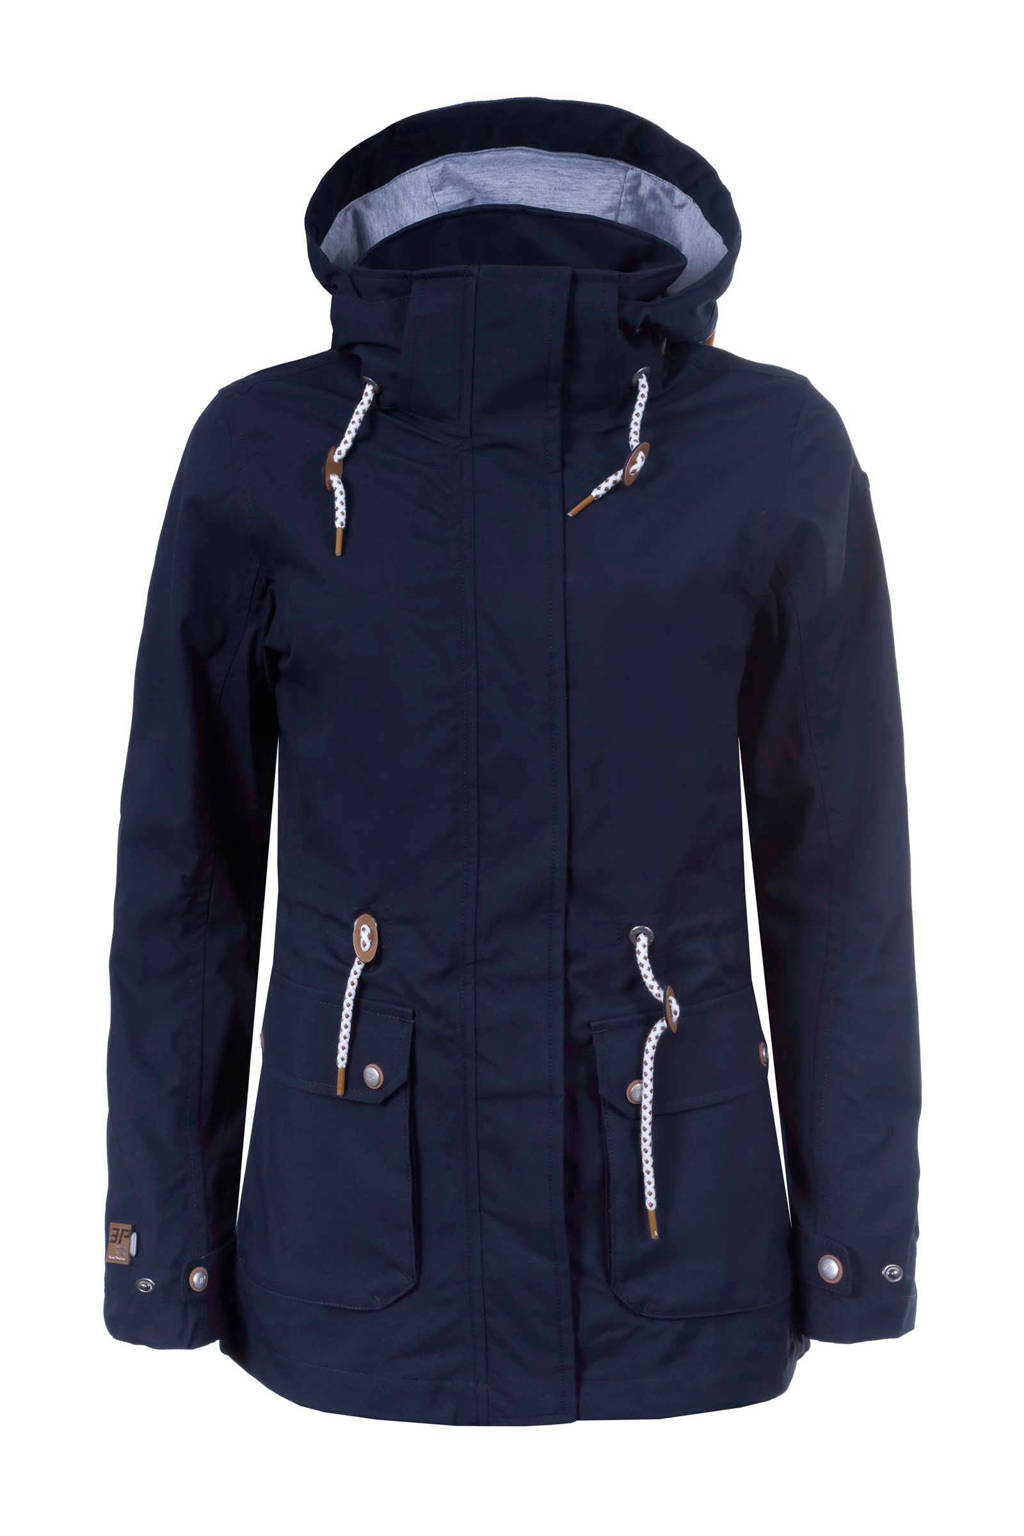 Icepeak outdoorjas Lane donkerblauw, Dark Blue